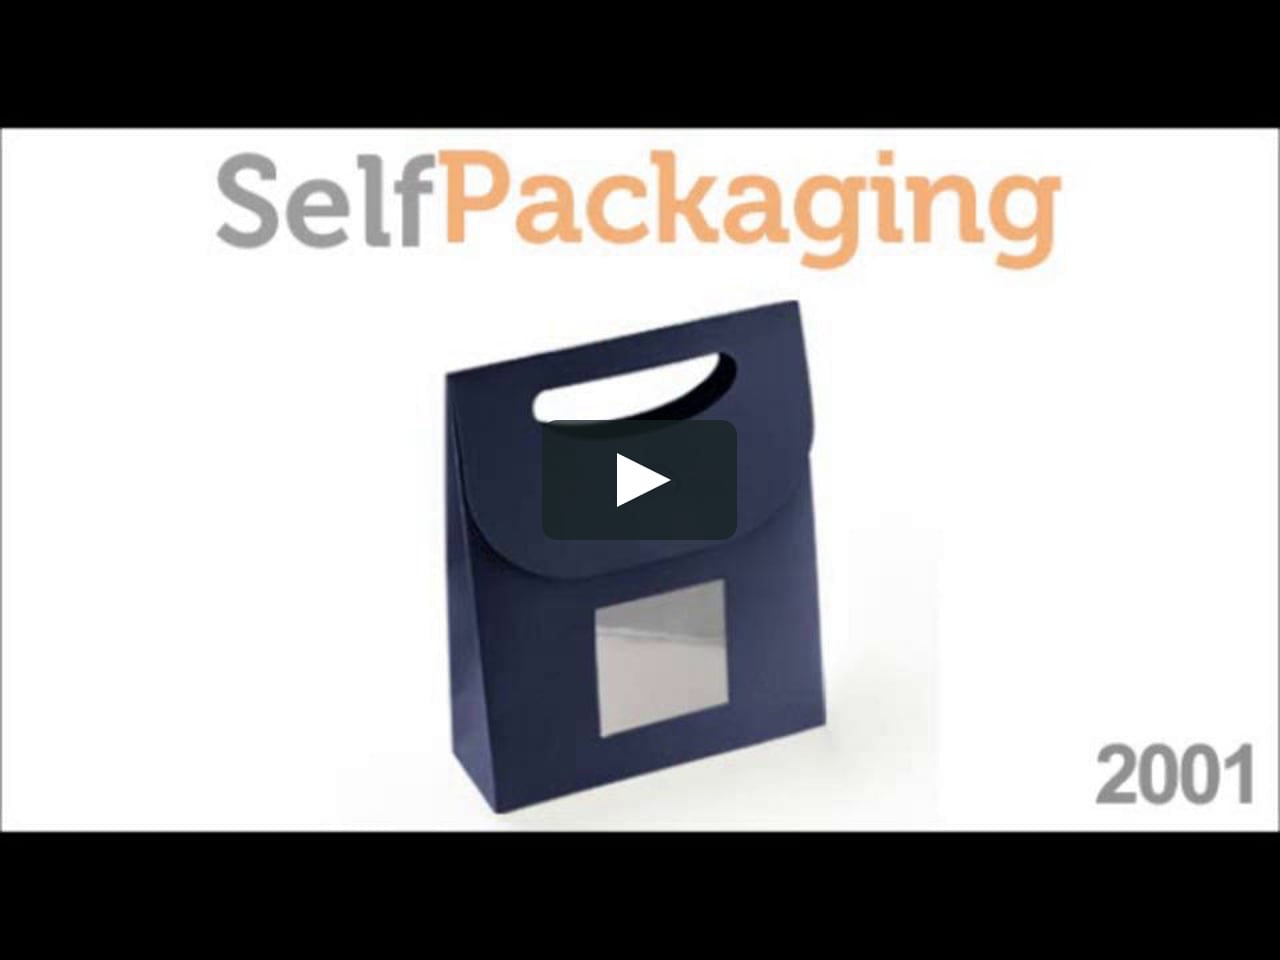 sac cadeau en carton avec une anse comment faire pochette cadeau 2001 de selfpackaging on vimeo. Black Bedroom Furniture Sets. Home Design Ideas